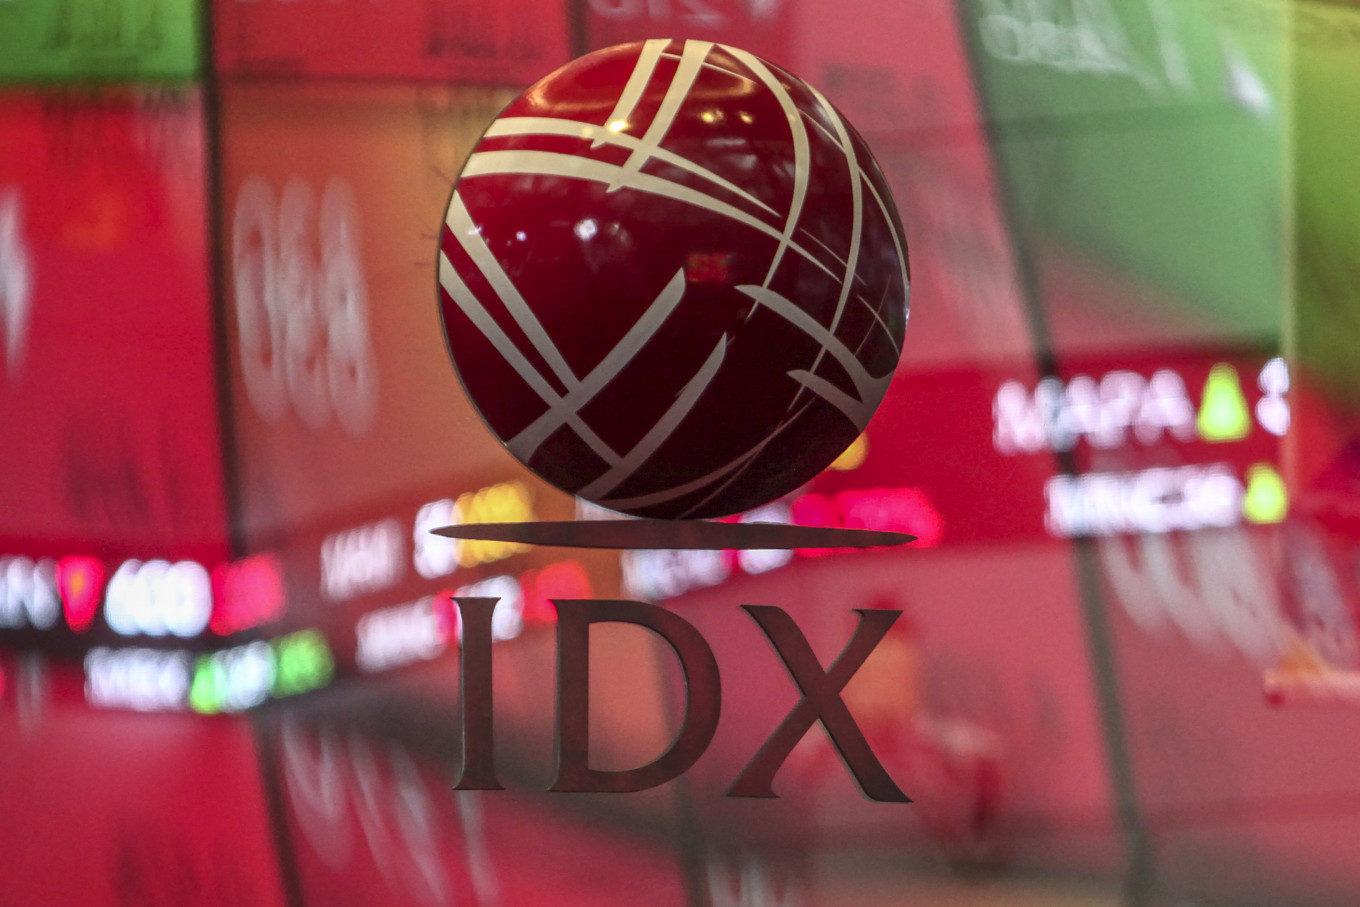 Indonesian stocks fall to 4-year low following Wall Street crash